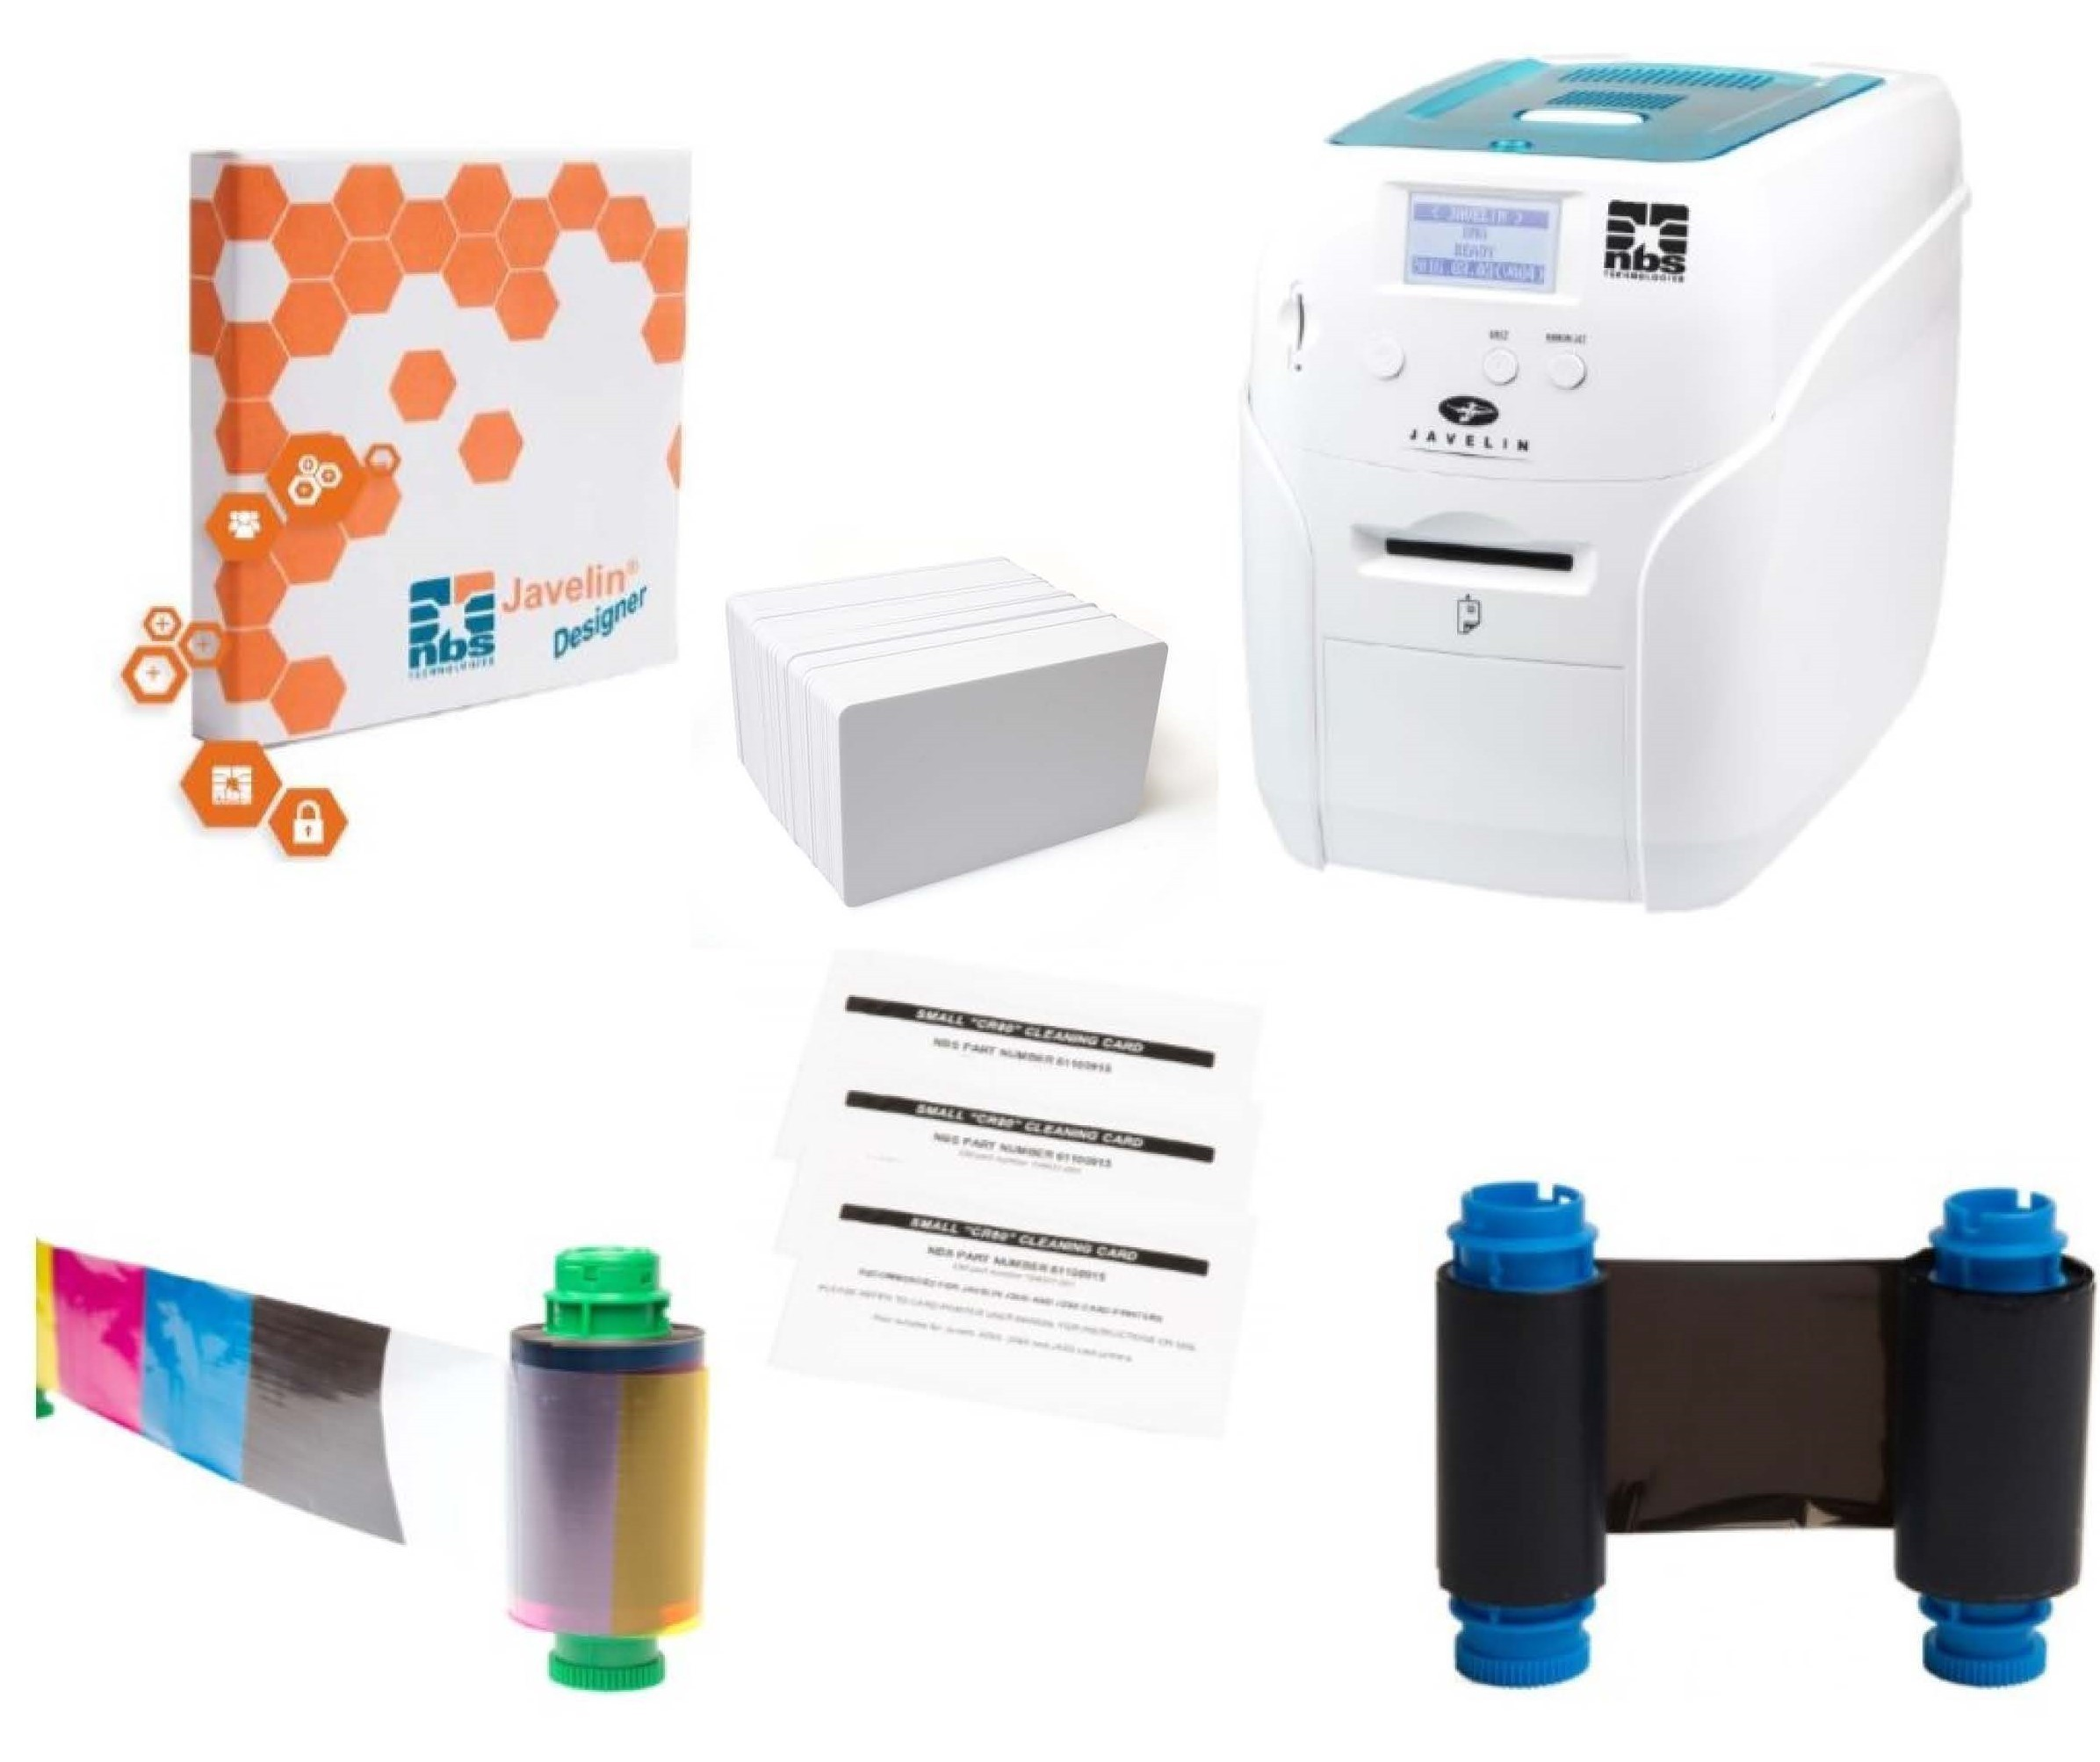 Javelin DNA Card Printer Bundle